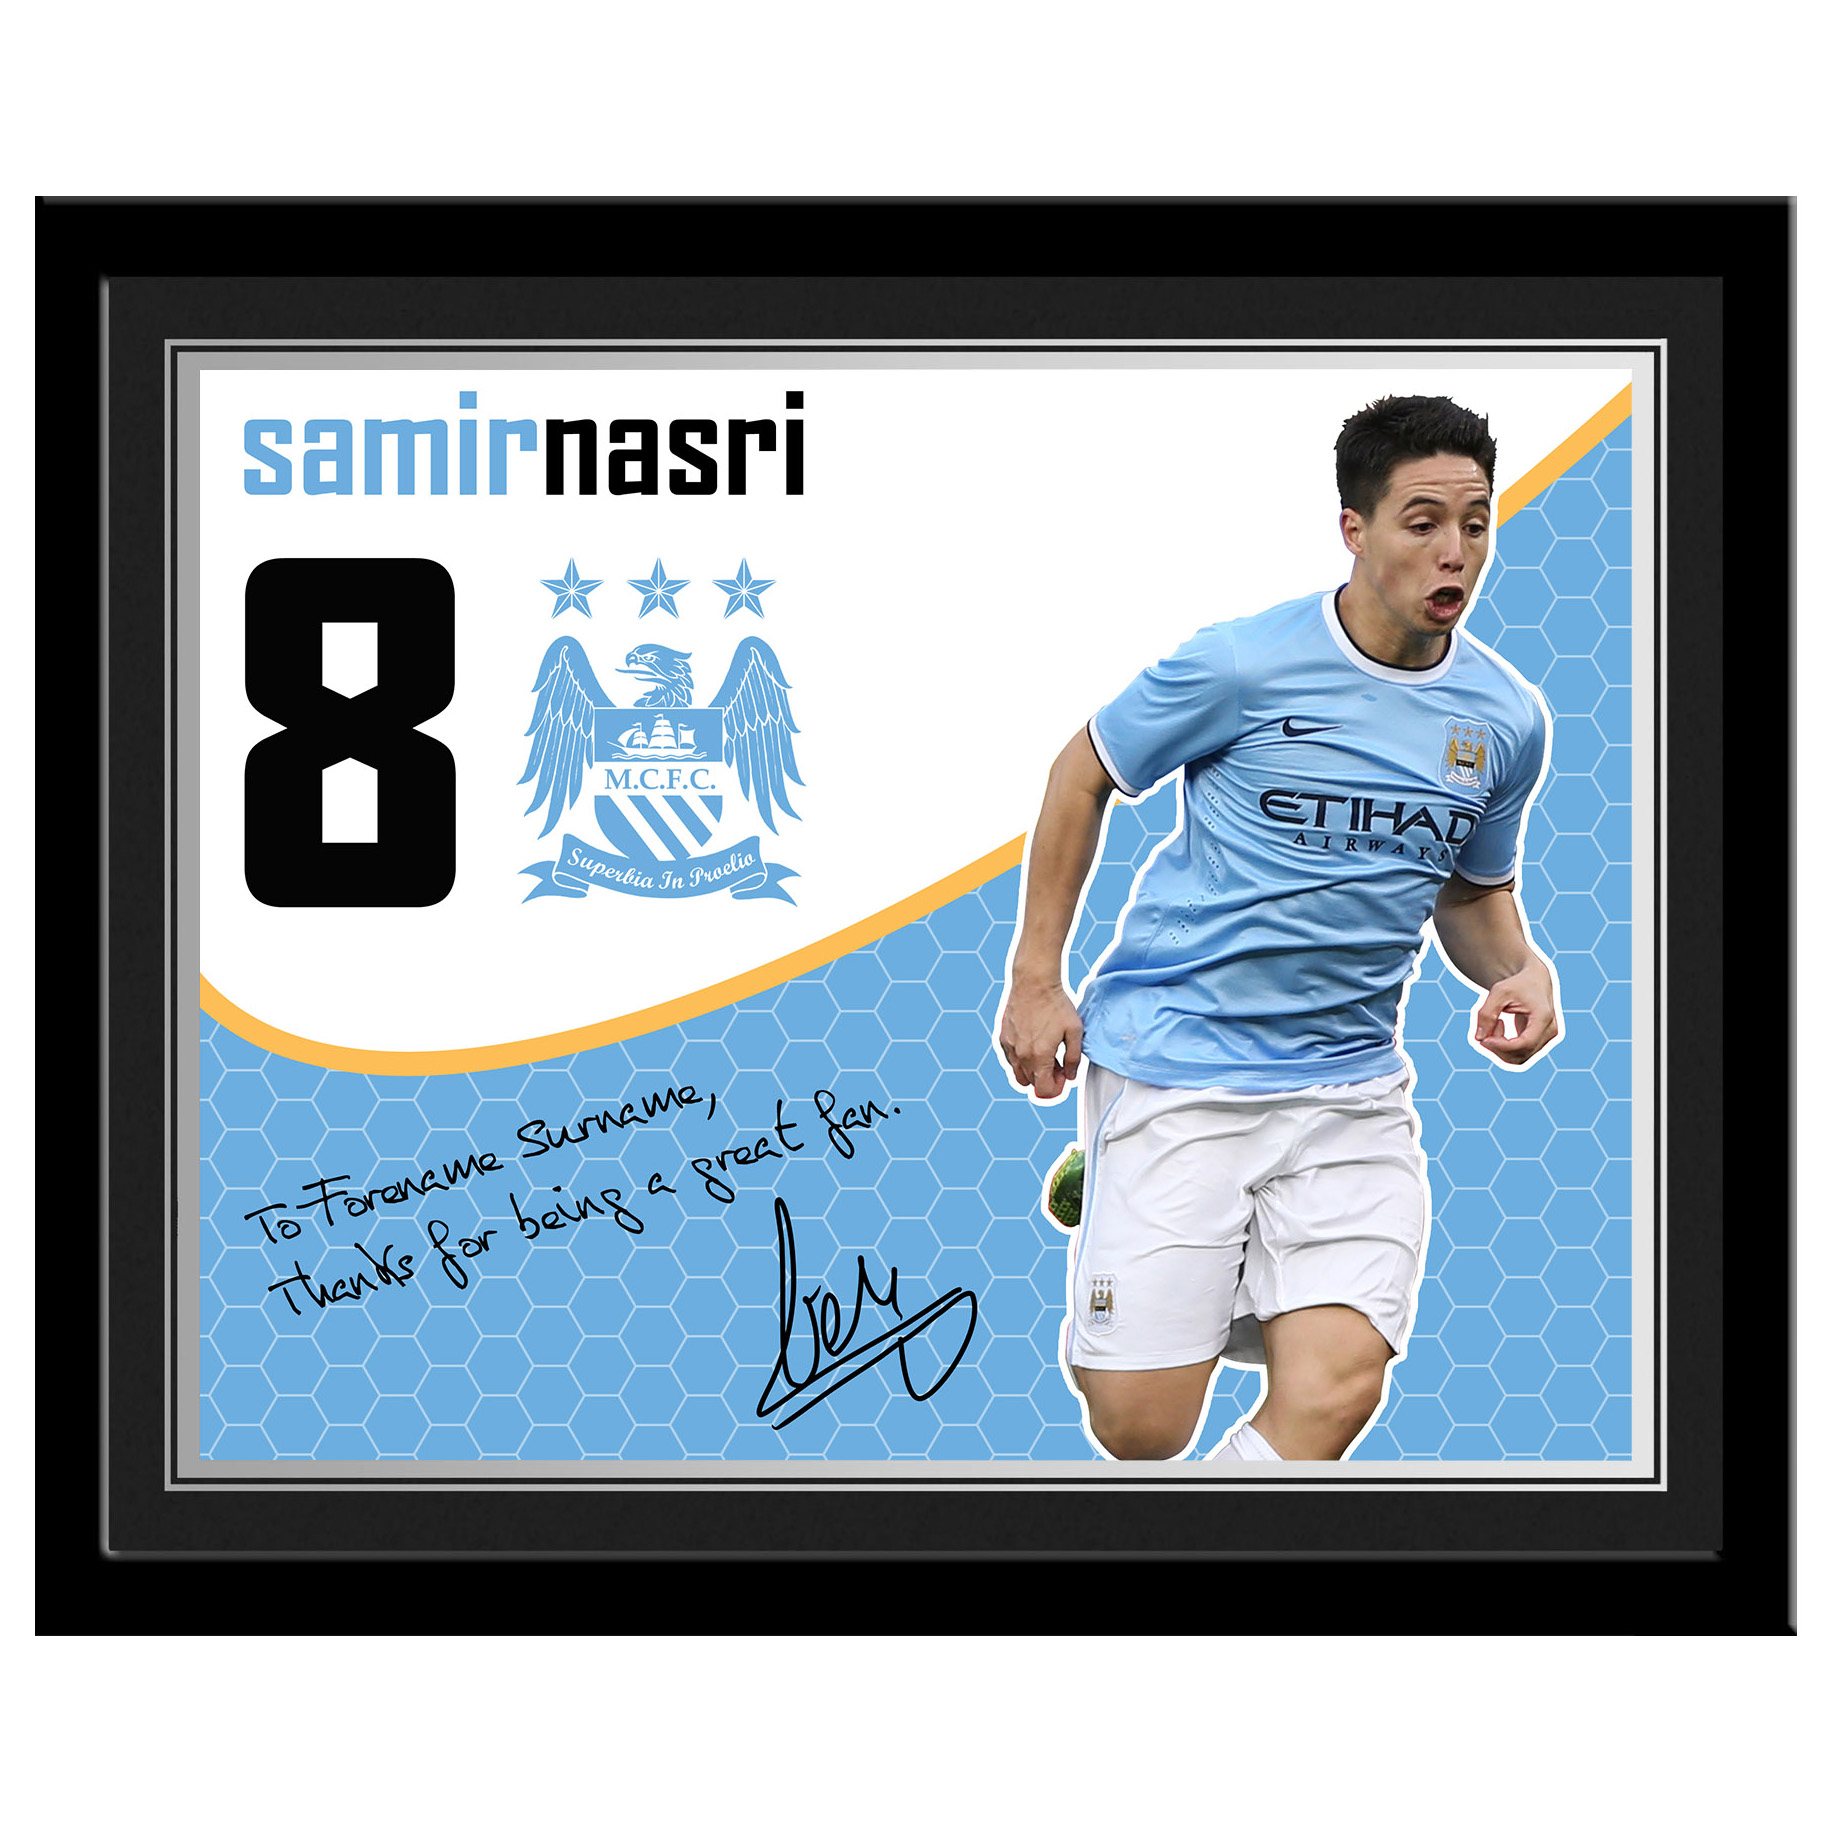 Manchester City Personalised Swirl Signature Photo Framed - Nasri